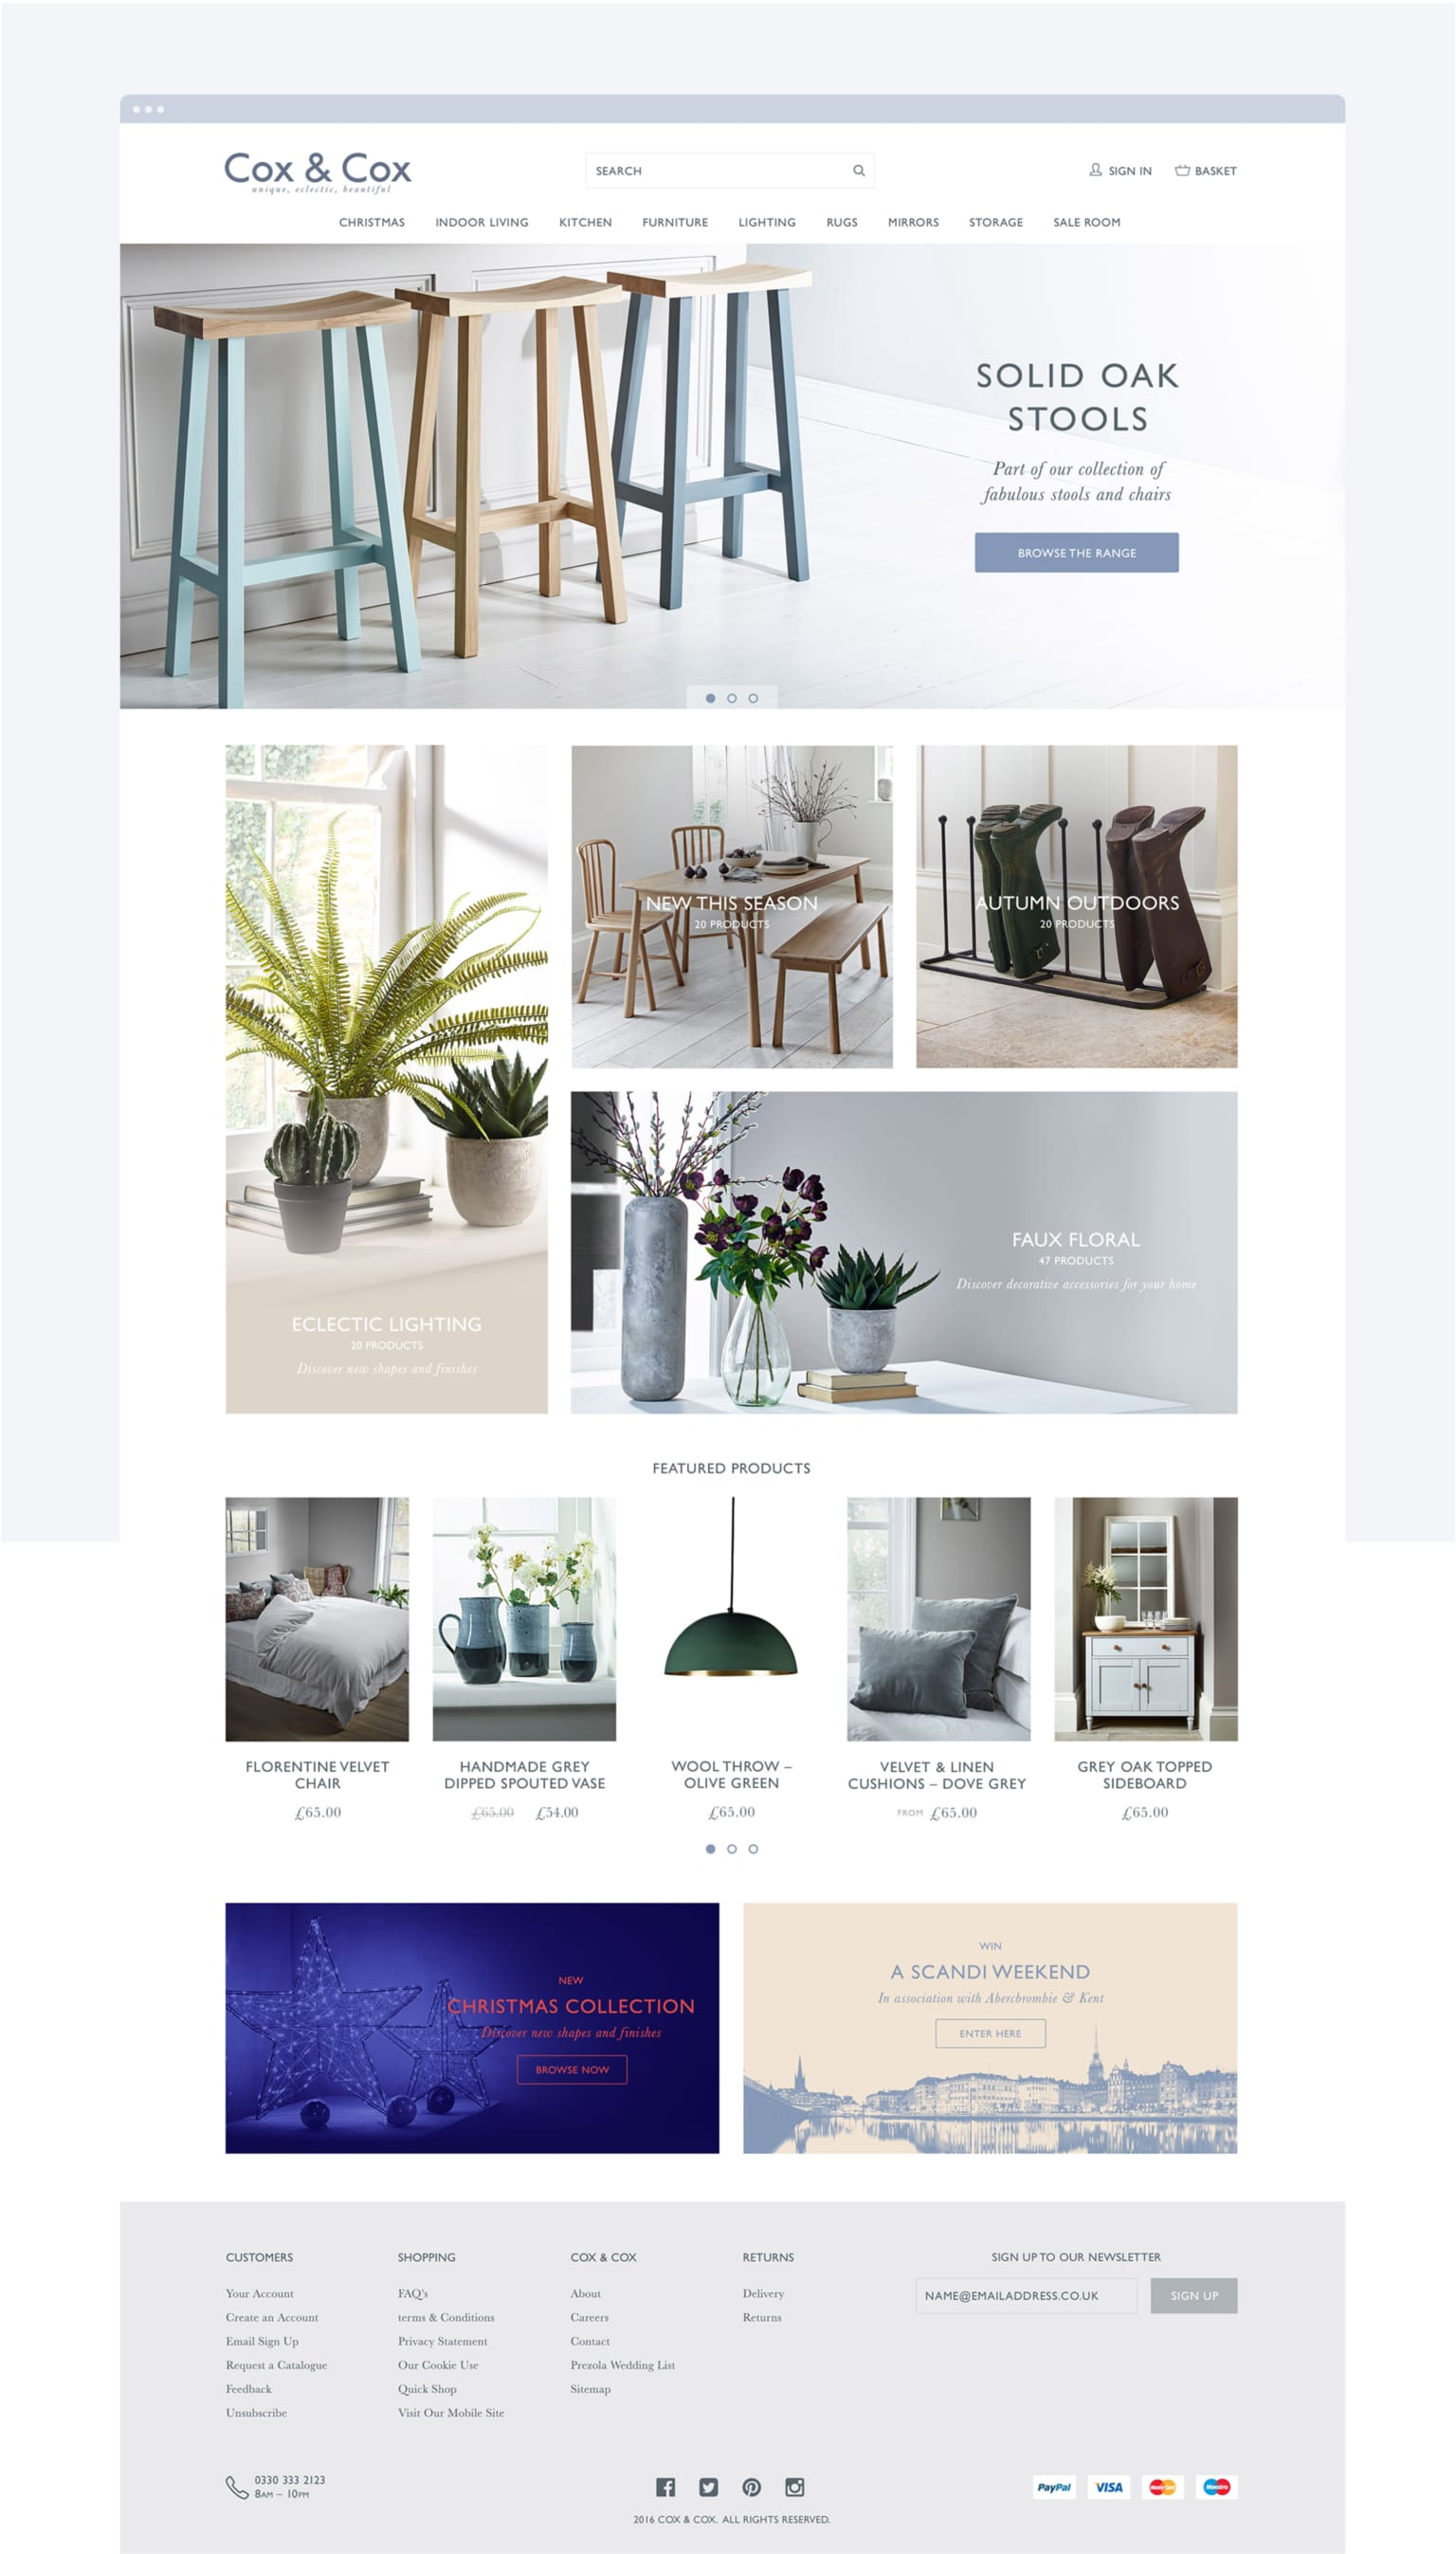 Design and art direction for a unique, eclectic and beautiful retailer